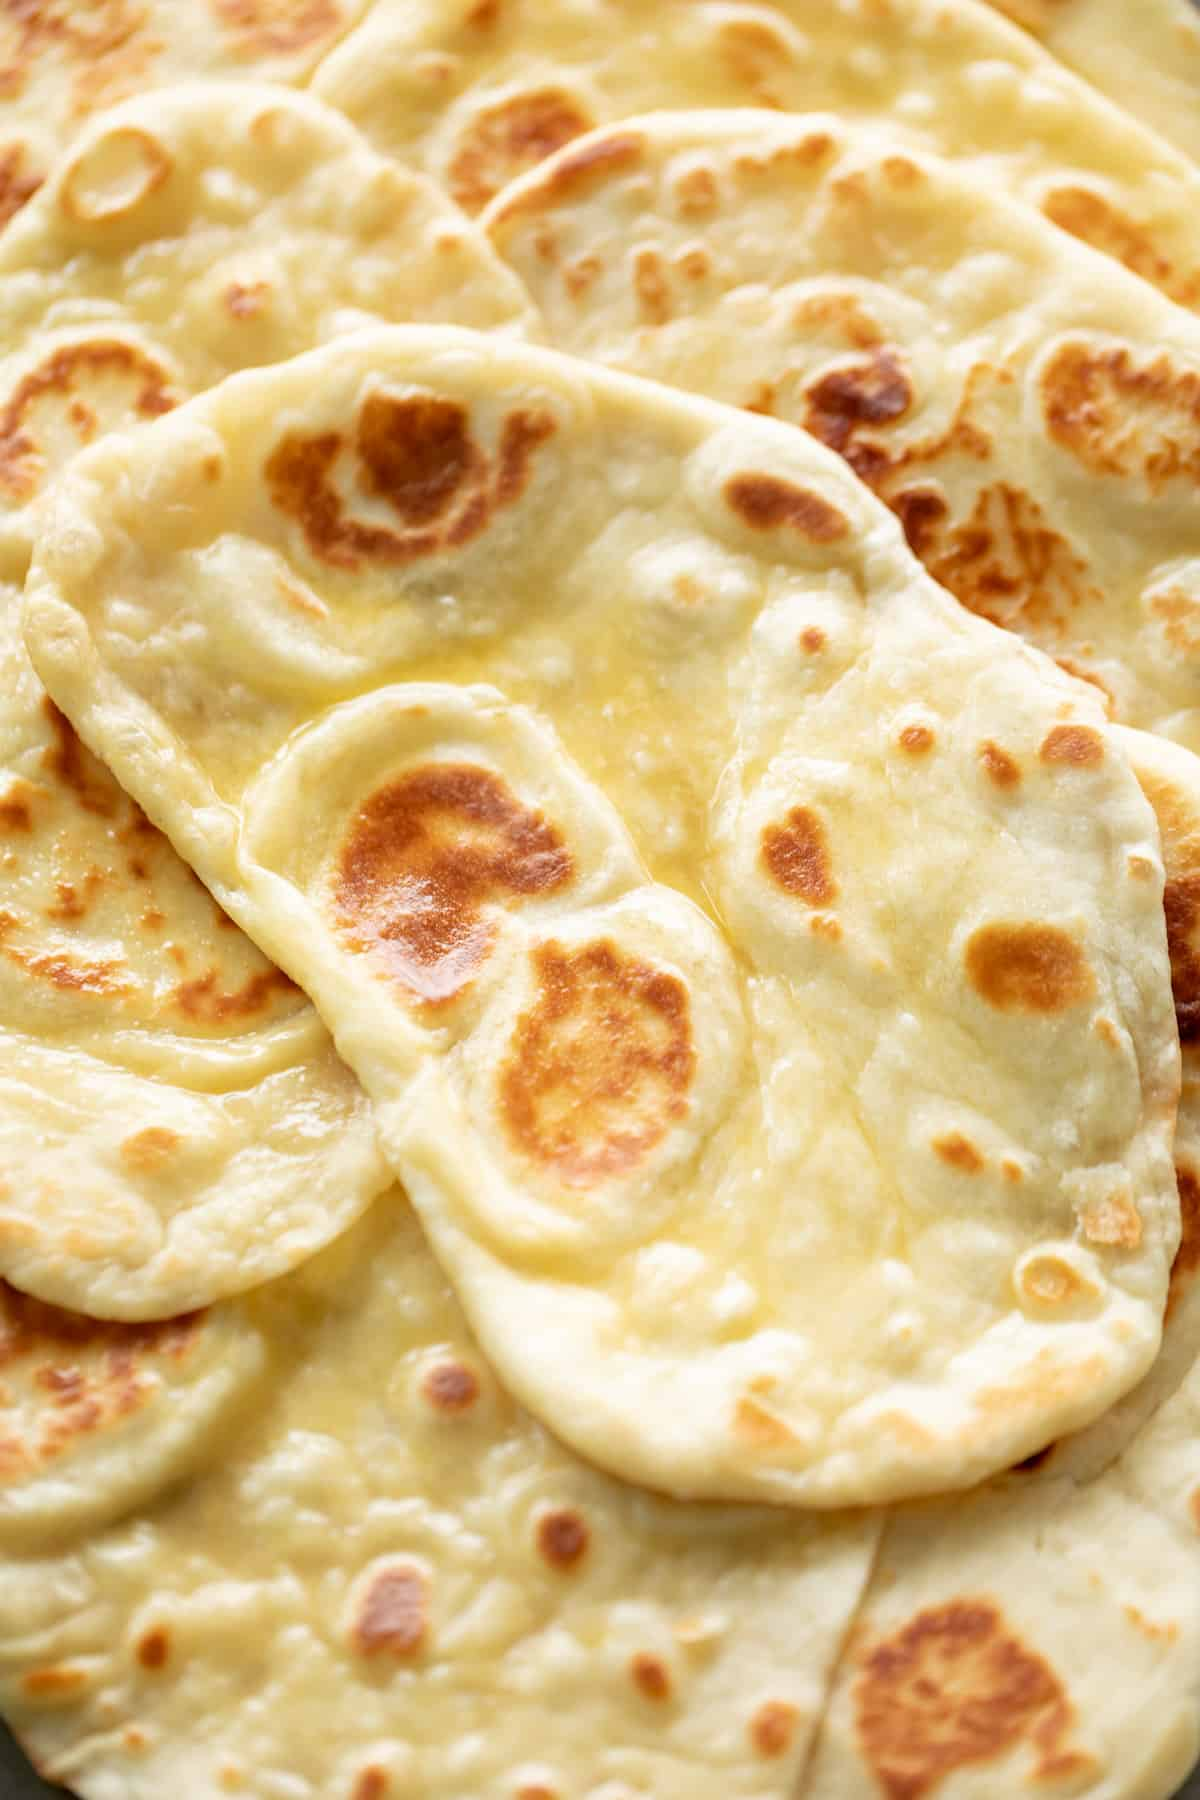 Soft Naan bread with melted butter and crushed garlic | craveitall.com